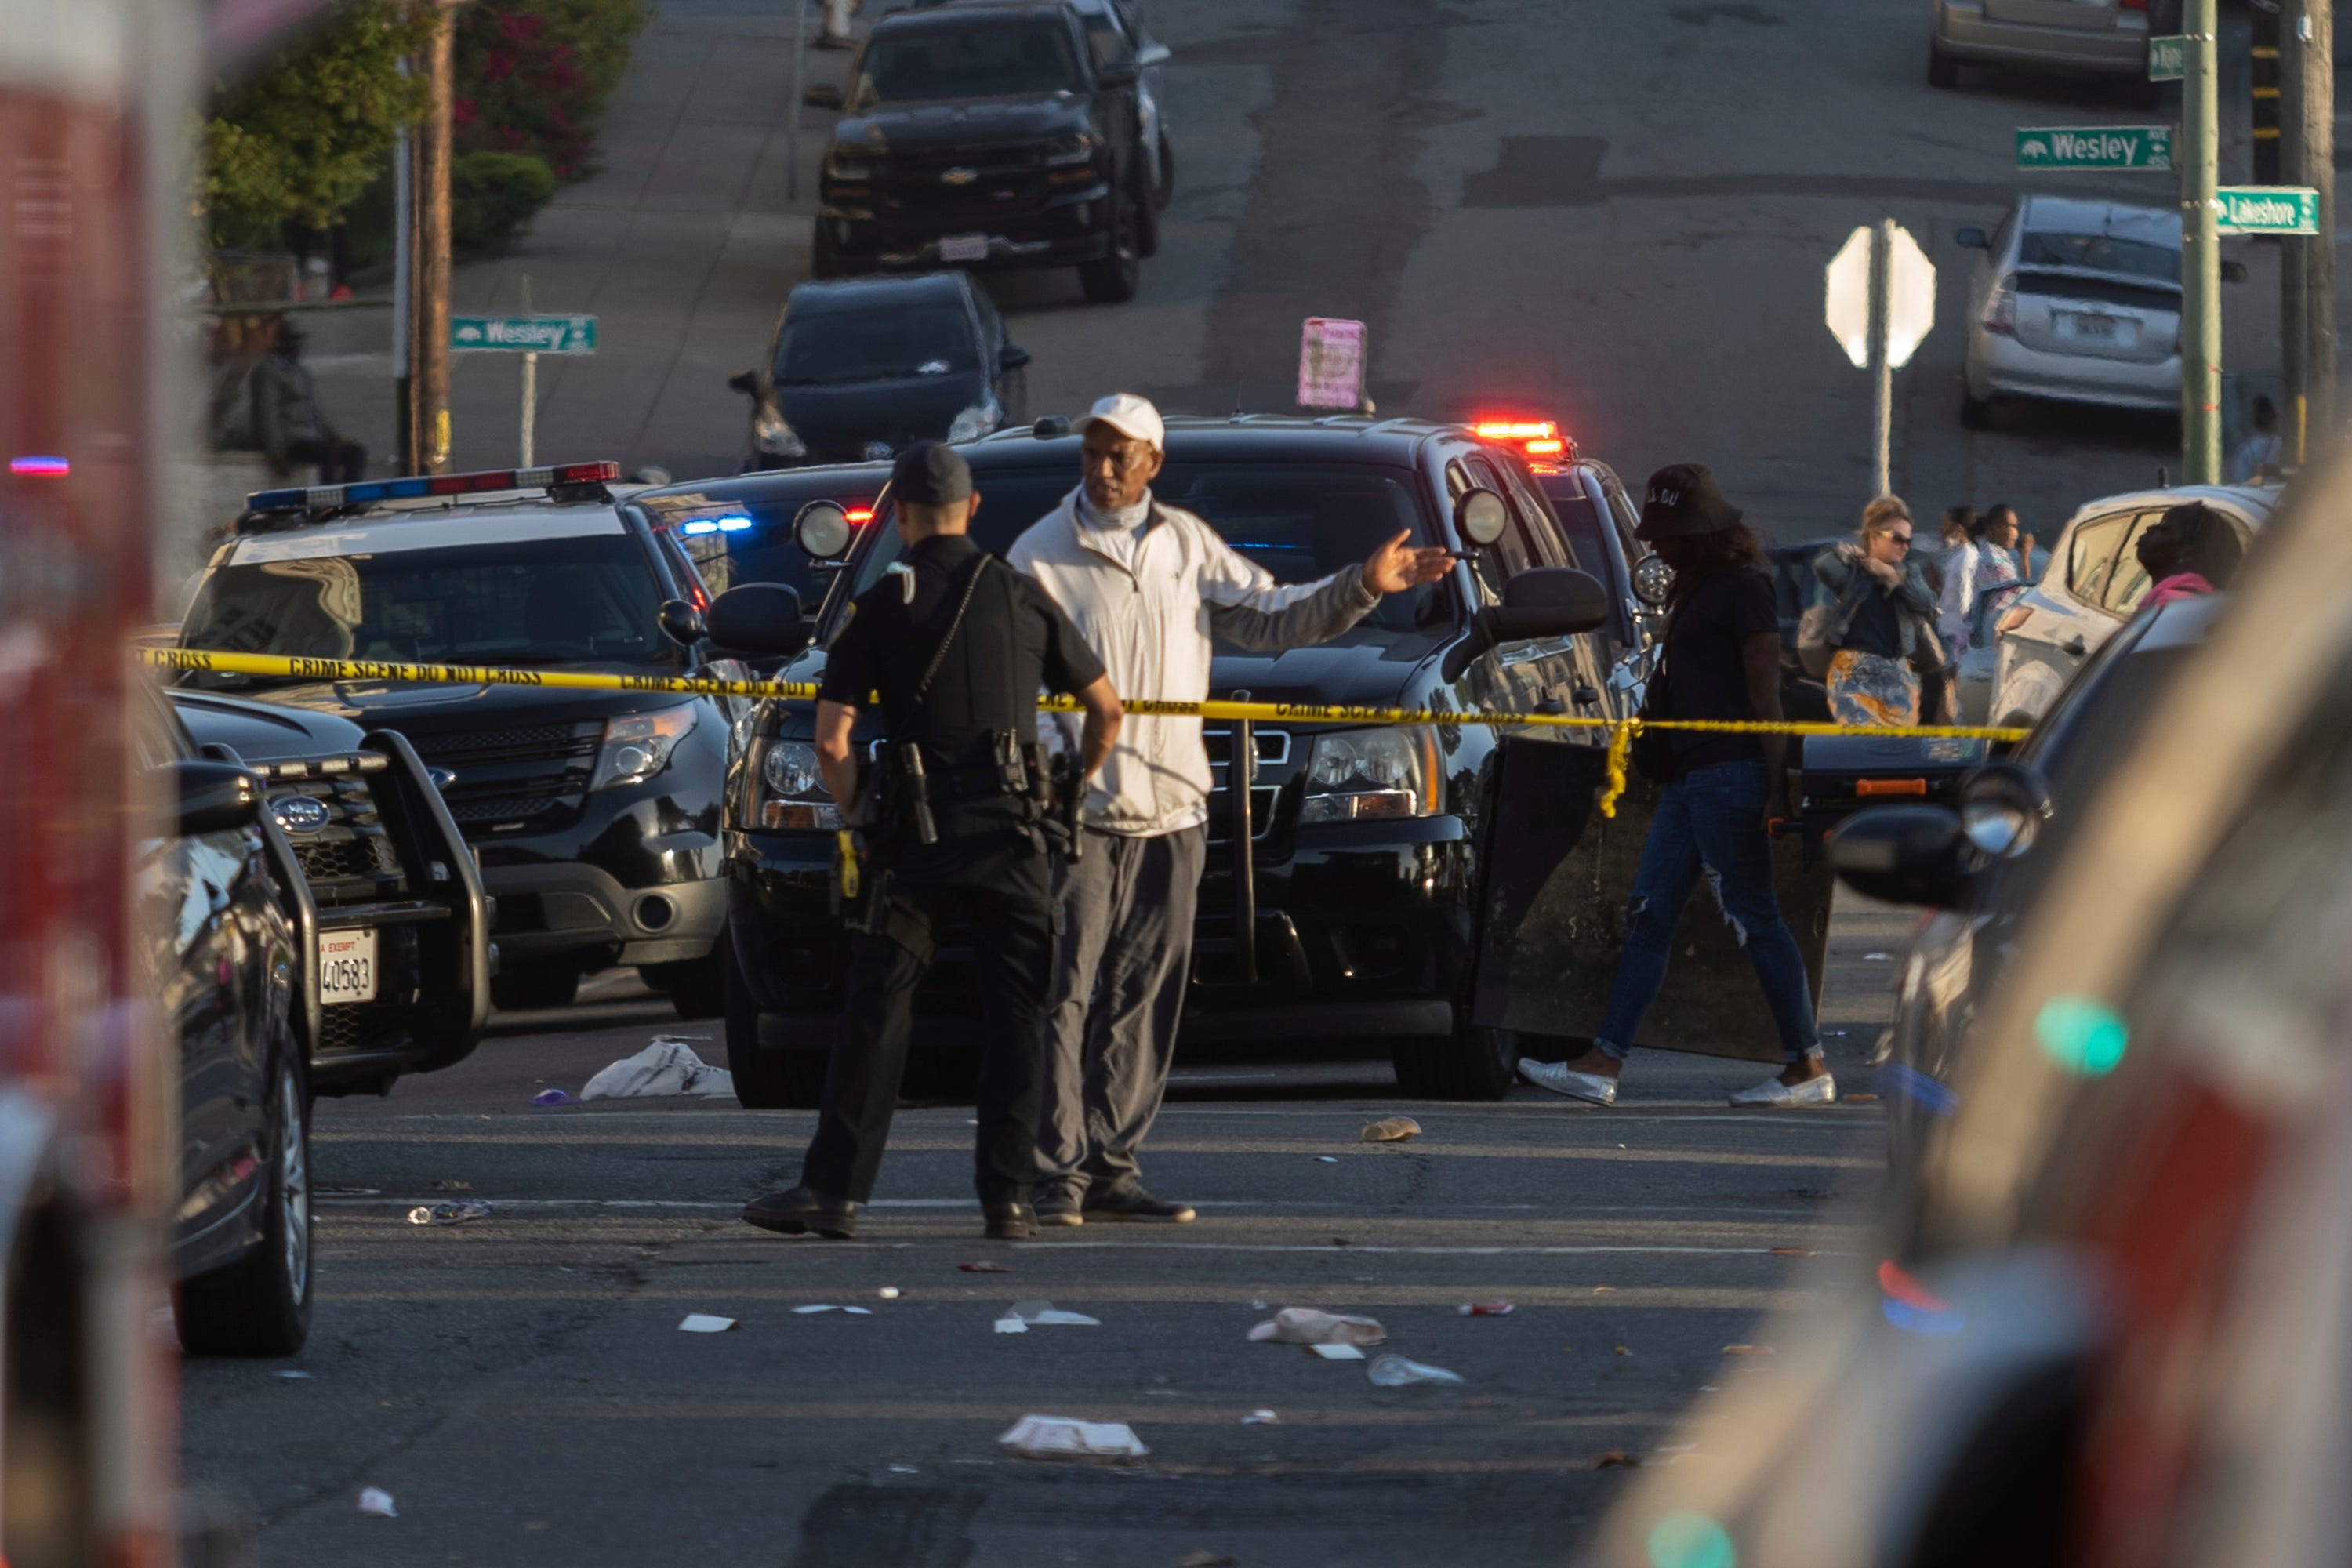 Officers work the scene of a shooting in Oakland, Calif., June 19, 2021, when a 22-year-old man was killed and five others wounded.